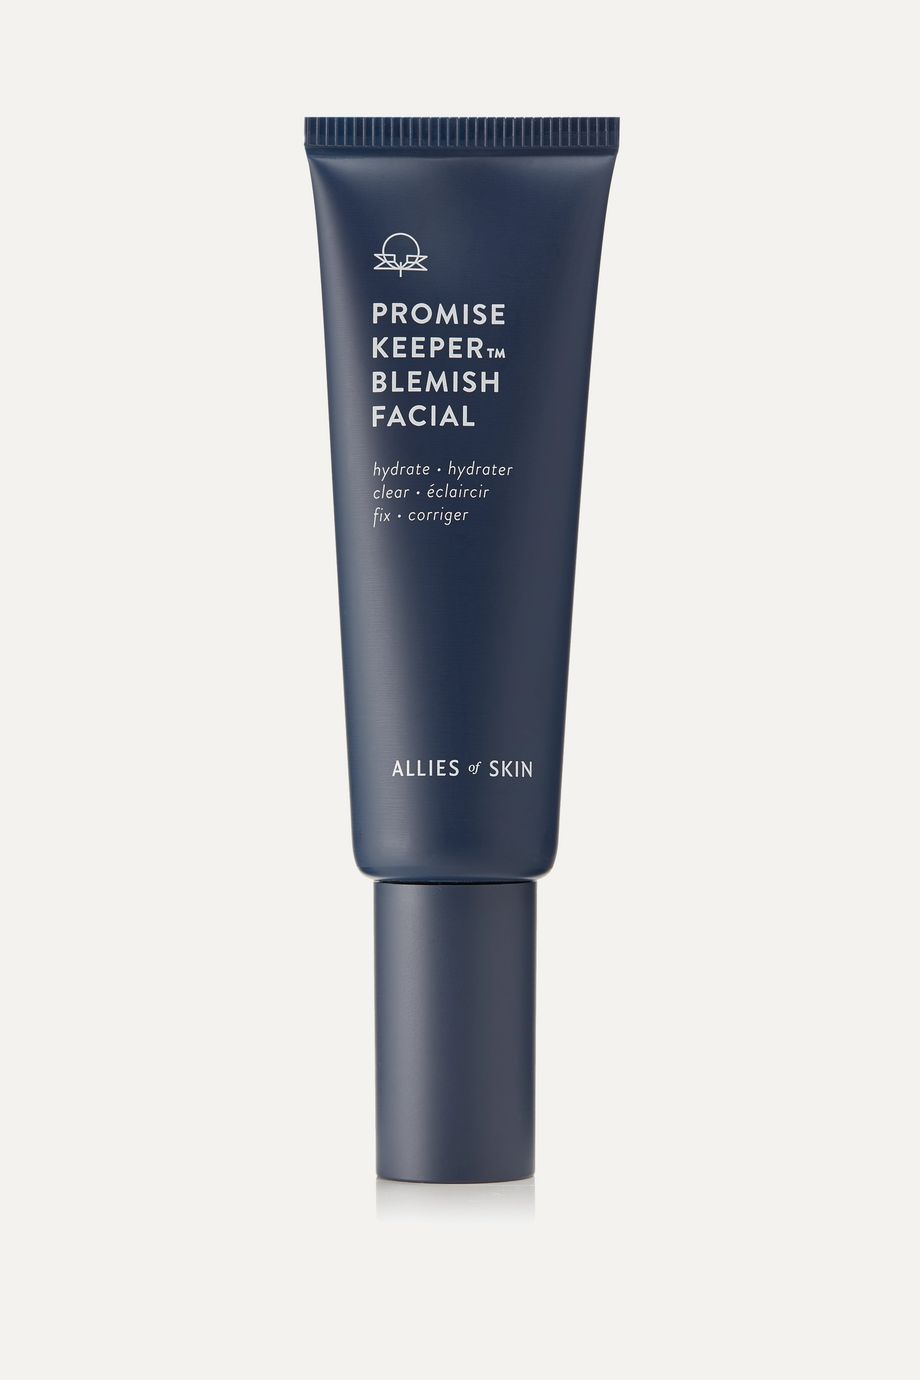 Allies of Skin Promise Keeper Blemish Facial, 50ml